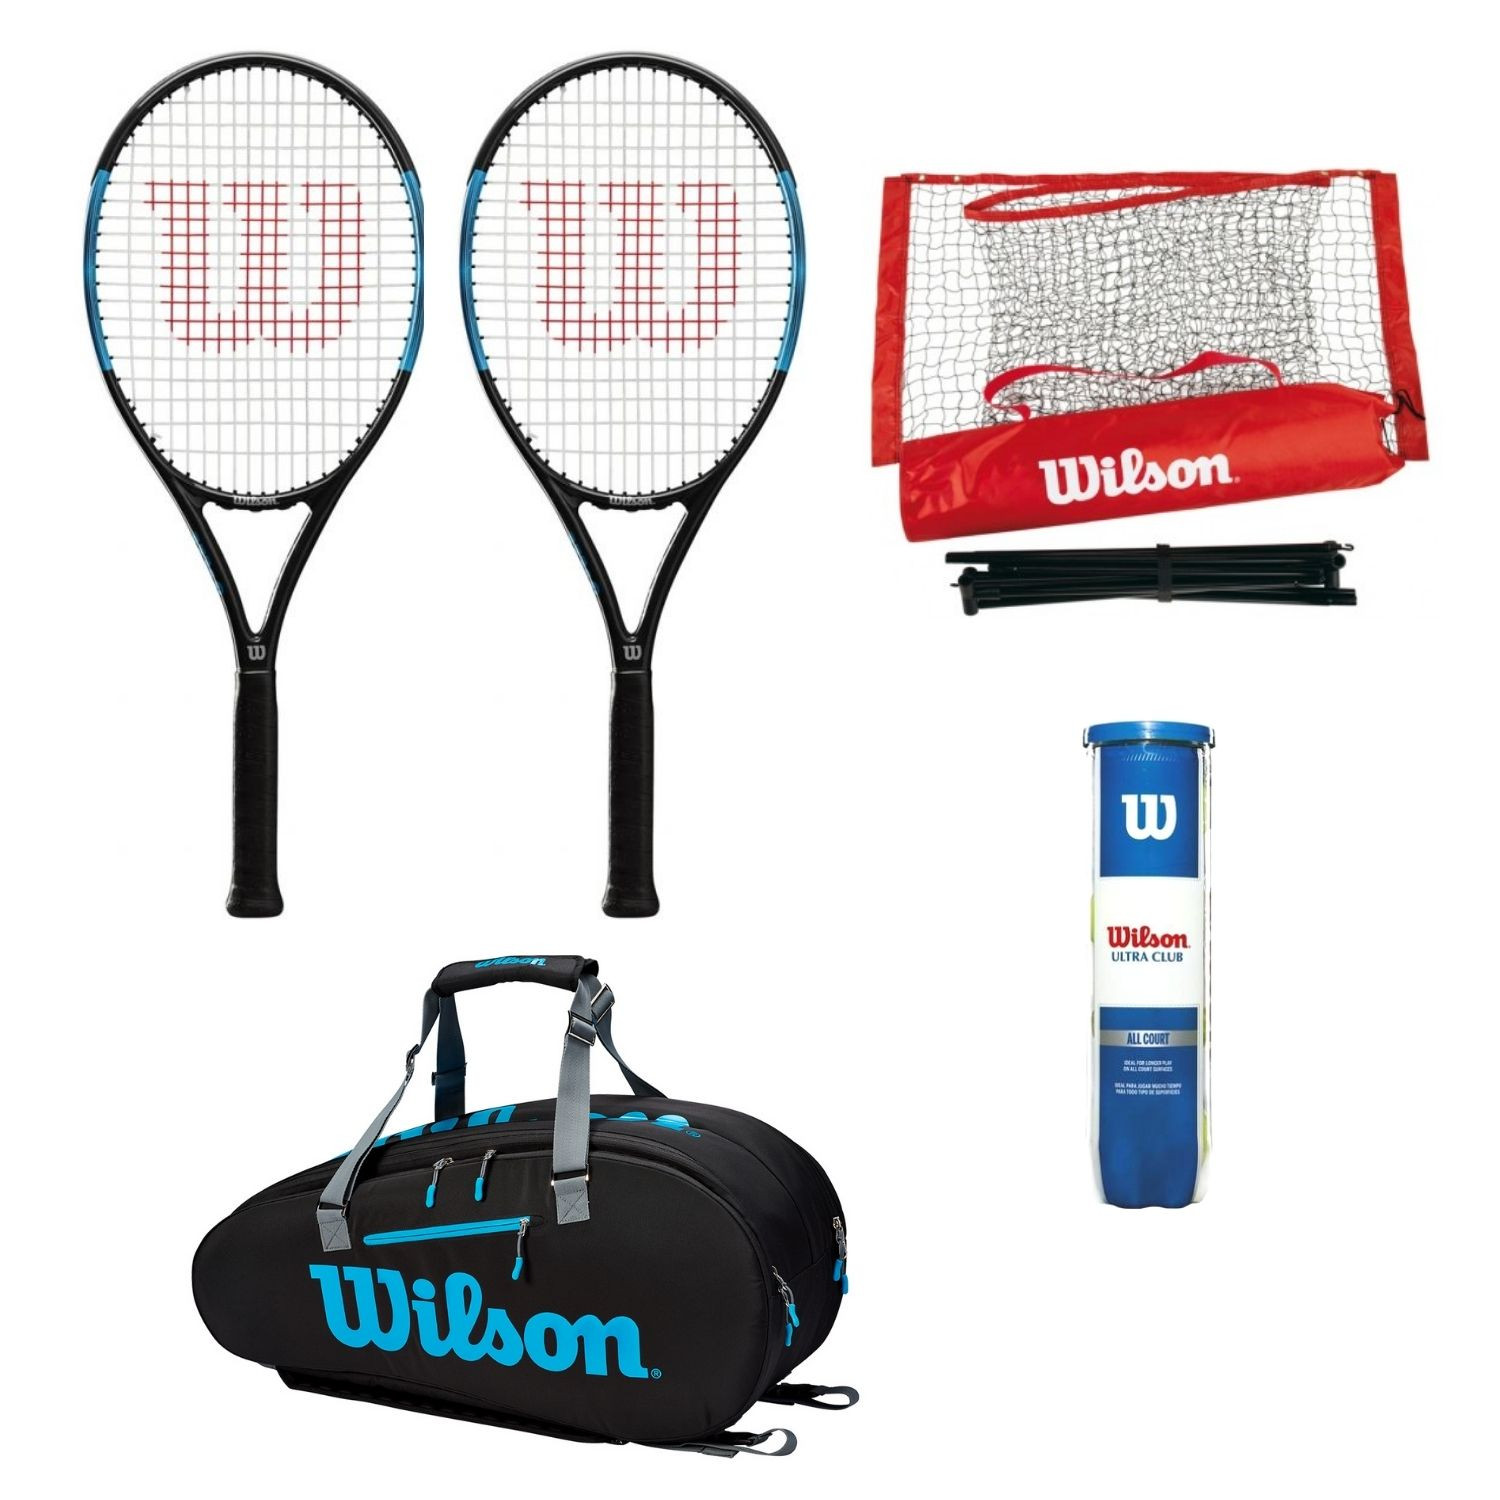 Tenisový set WILSON Ultra Power PRO 105  Vak Ultra 9pack  Sieť Starter EZ Tennis Net  Loptičky Ultra Club All Court Modrá L2